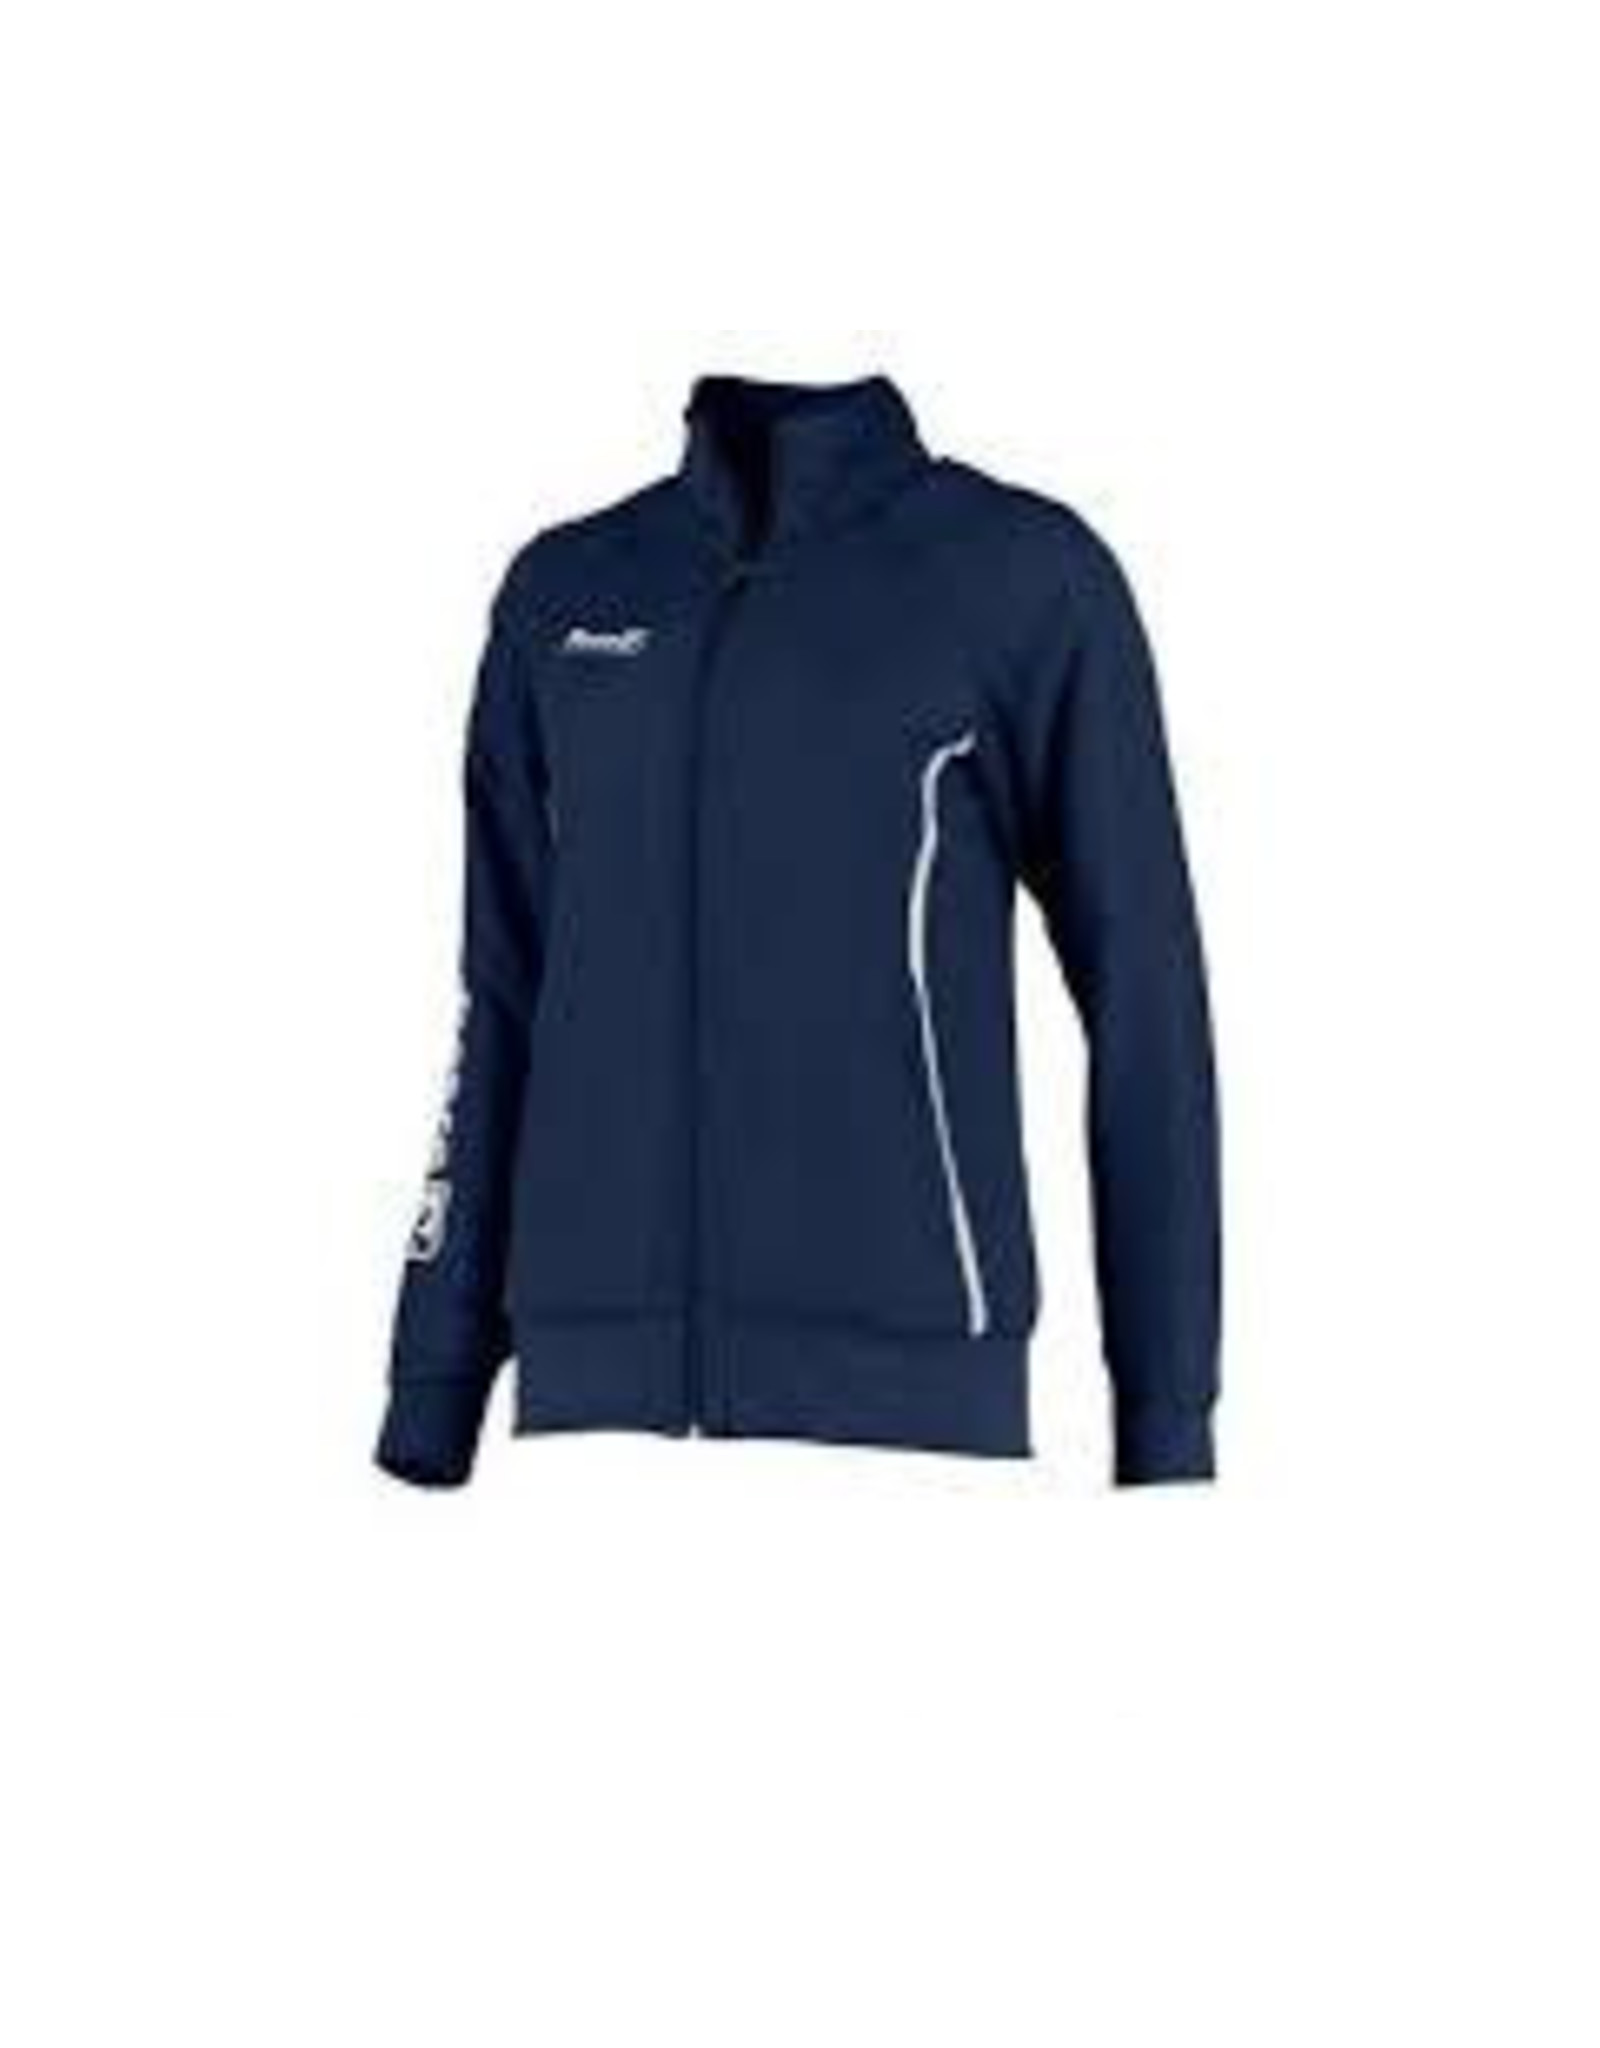 REECE REECE CORE WOVEN JACKET LADIES